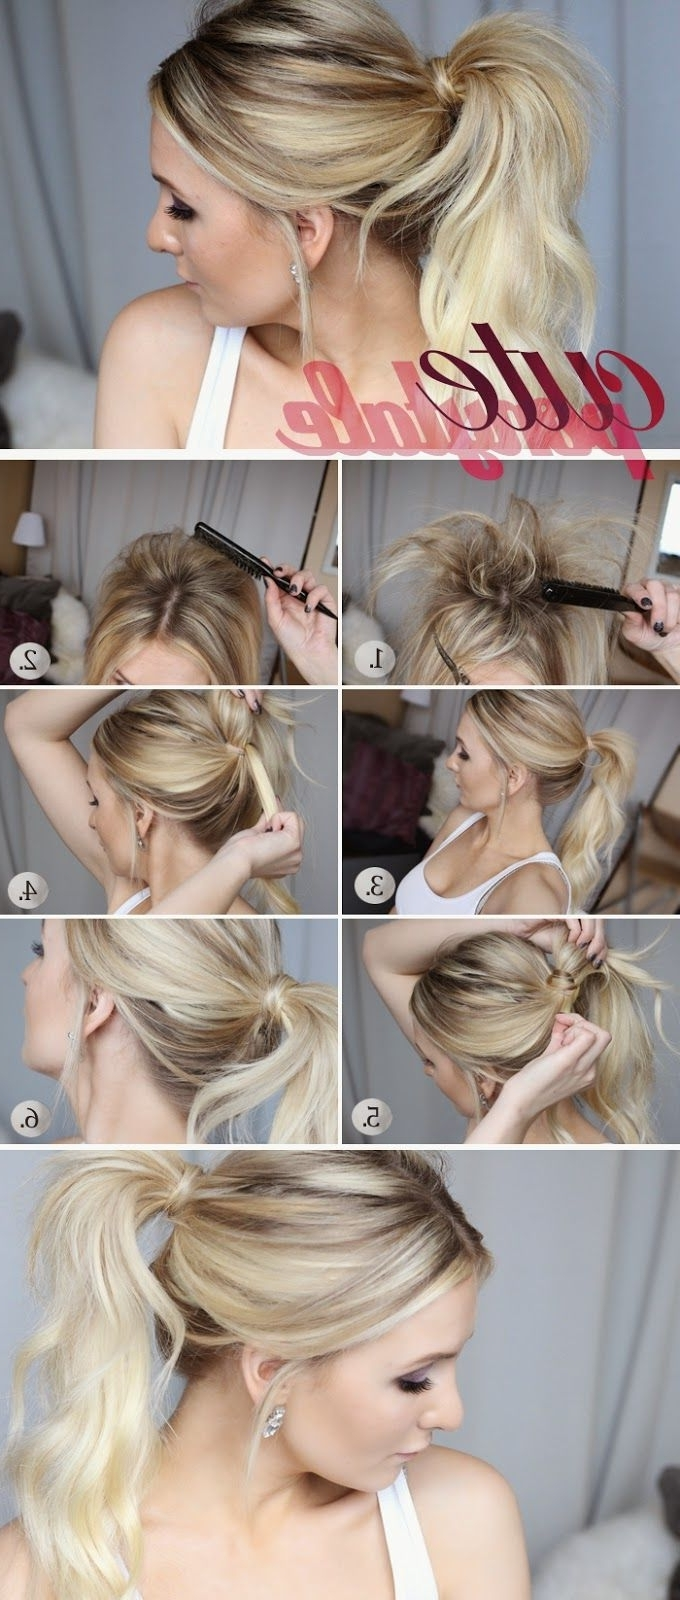 2310 Best Hair Style Images On Pinterest (View 18 of 20)